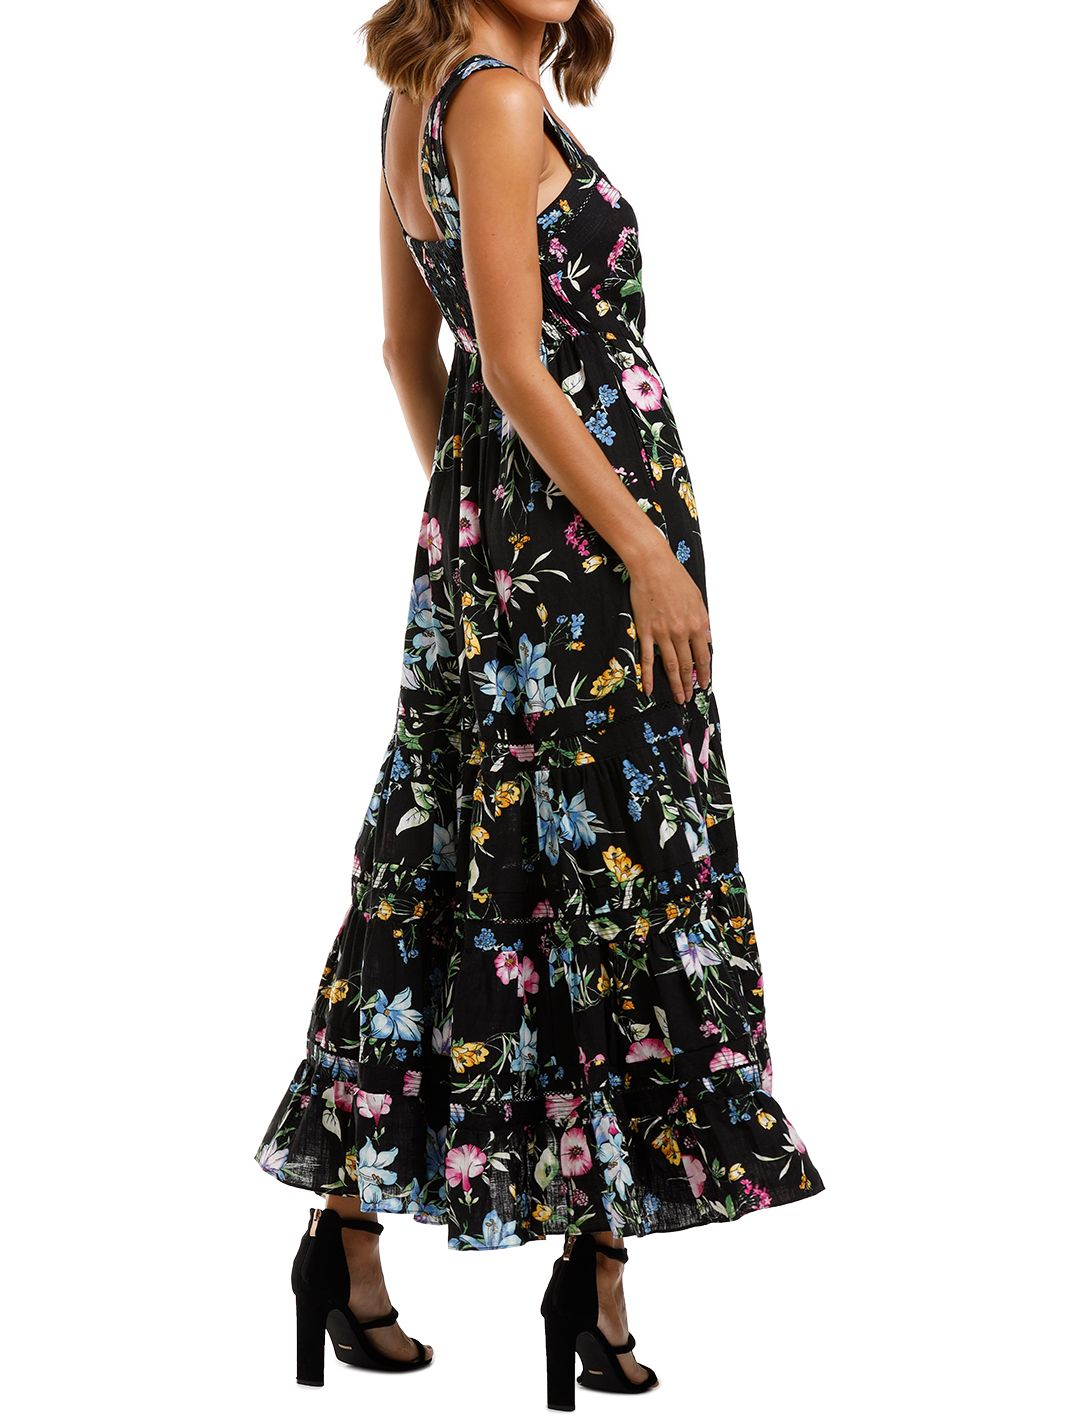 Misa LA Aurelia Dress dark floral